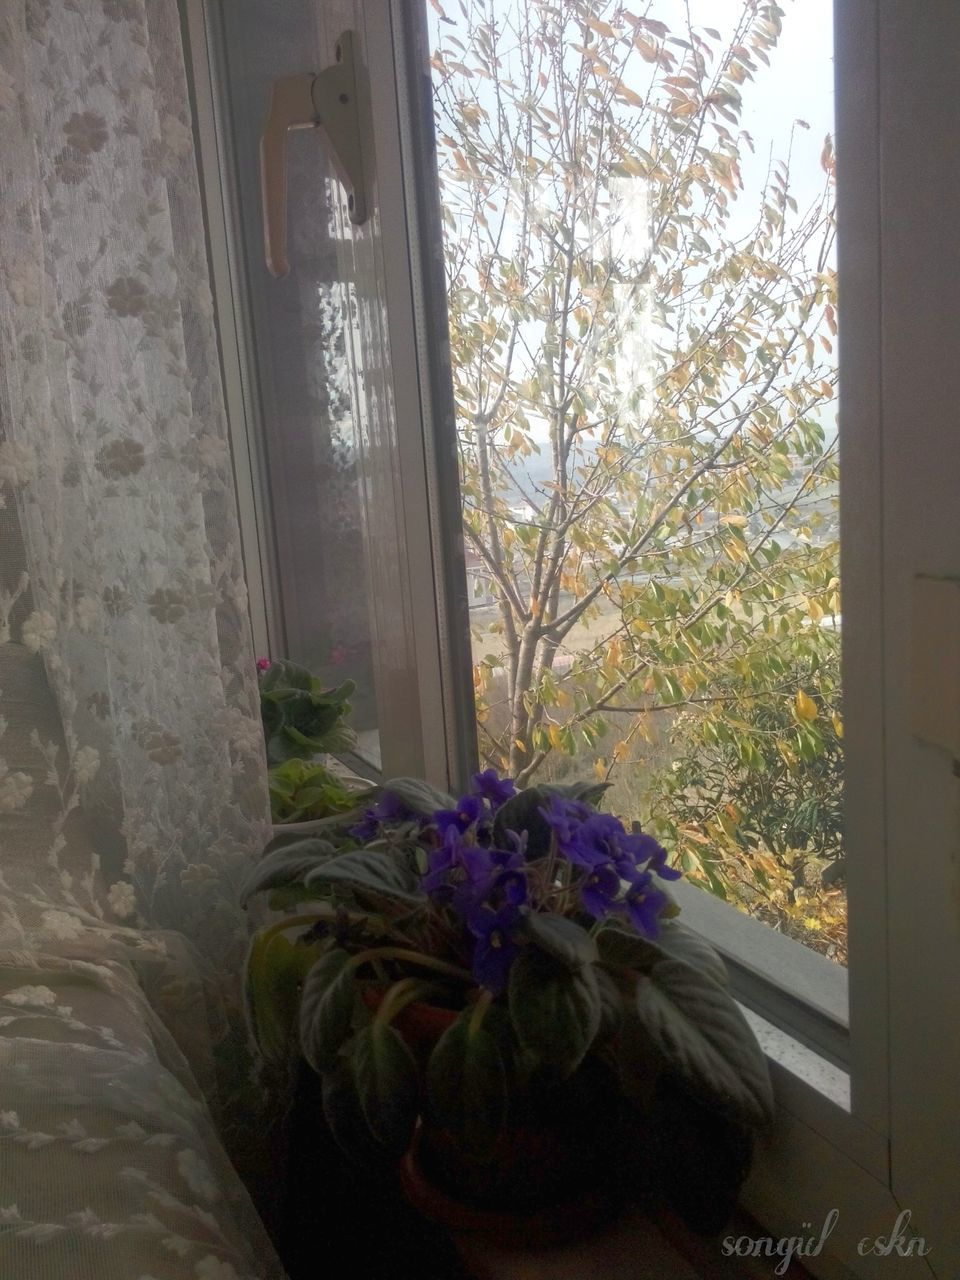 window, flower, no people, nature, indoors, growth, plant, curtain, day, beauty in nature, fragility, close-up, freshness